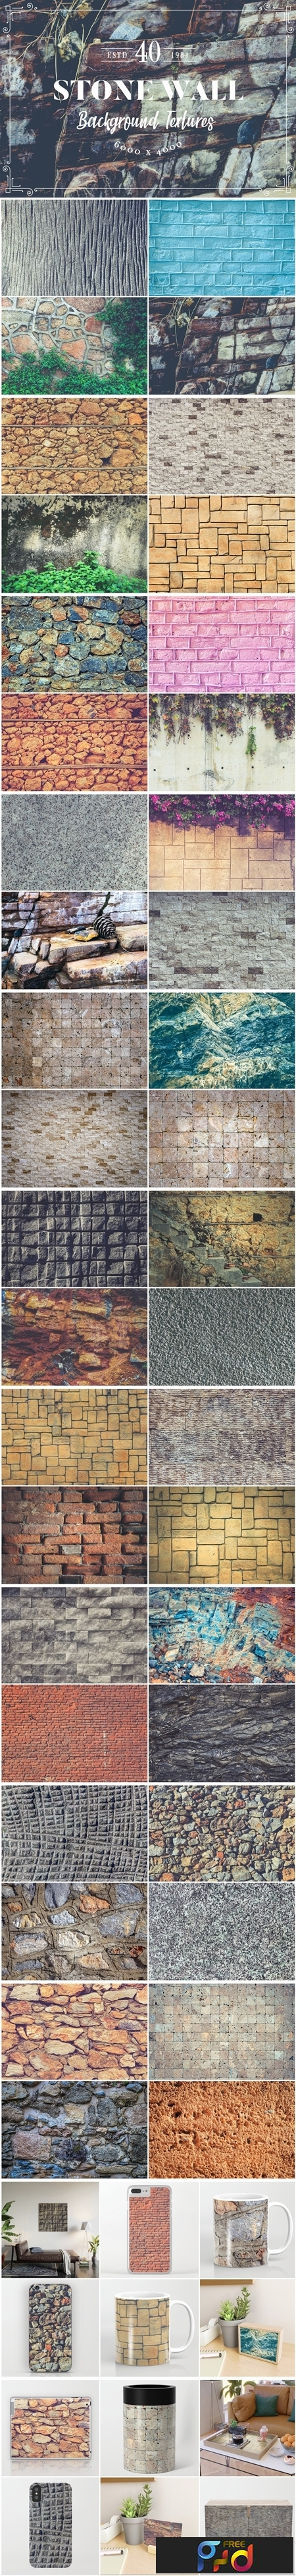 40 Stone Wall Background Textures 3737569 1